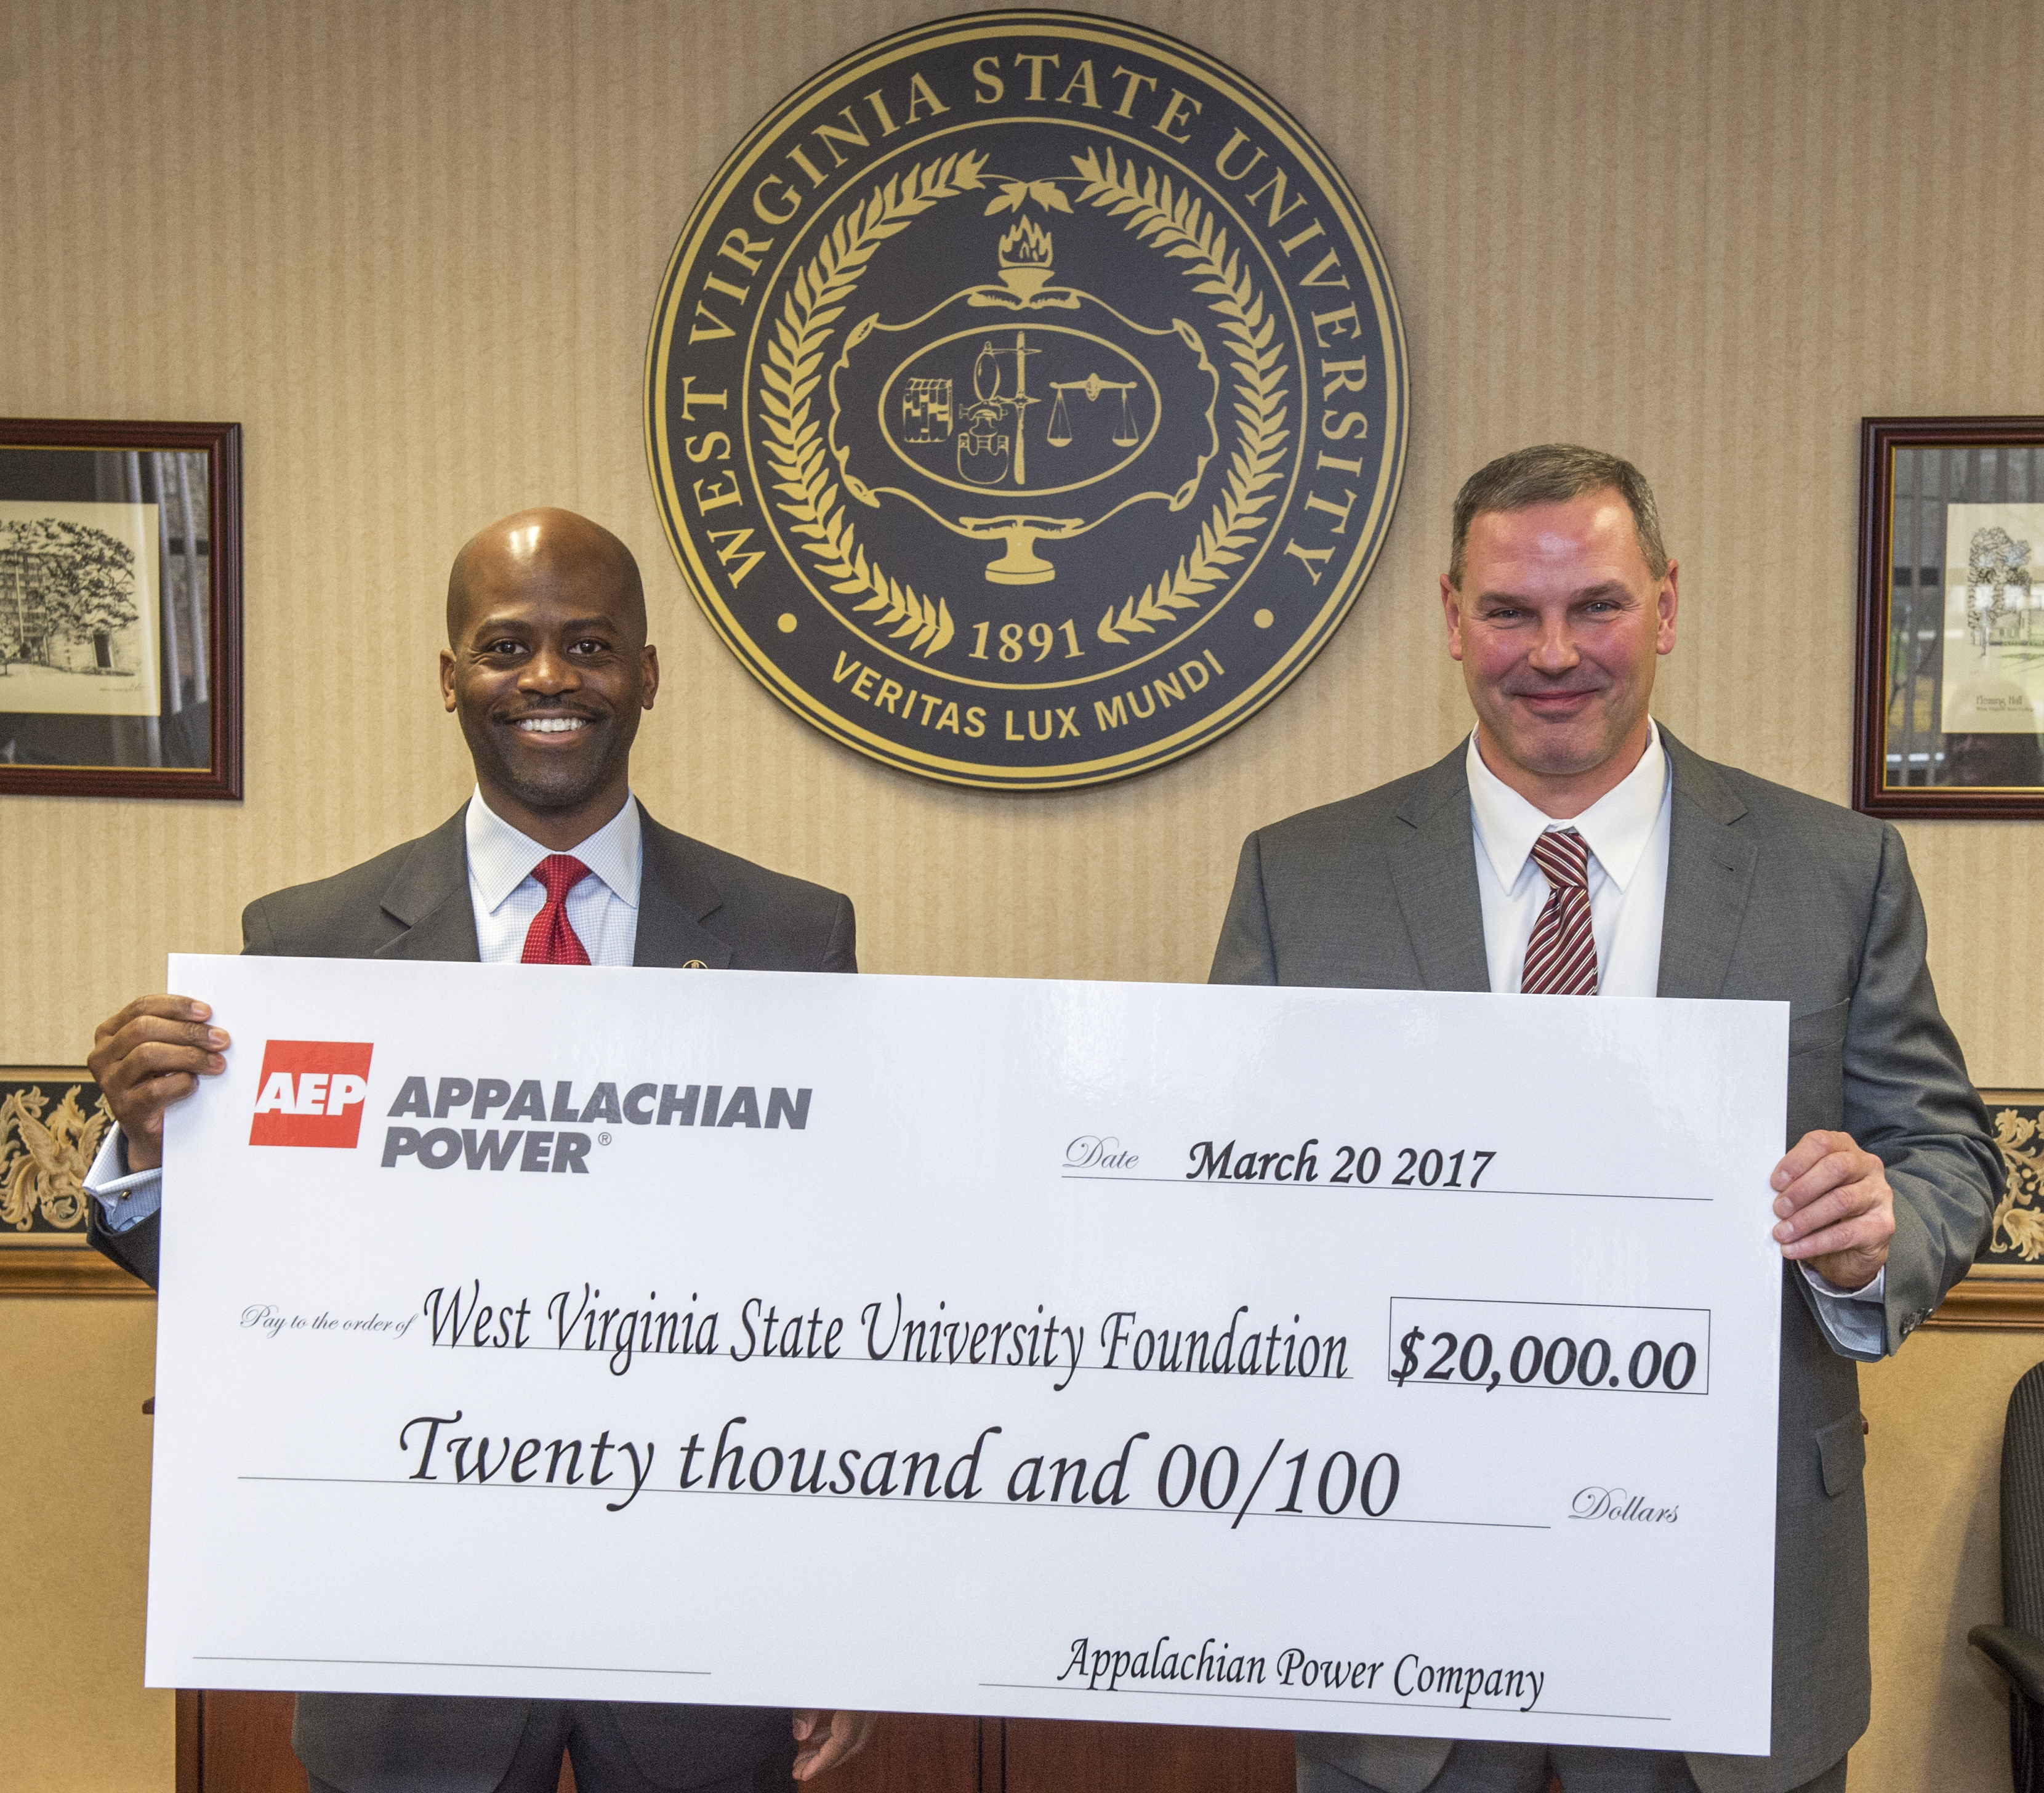 WVSU Foundation receives funding support from AEP